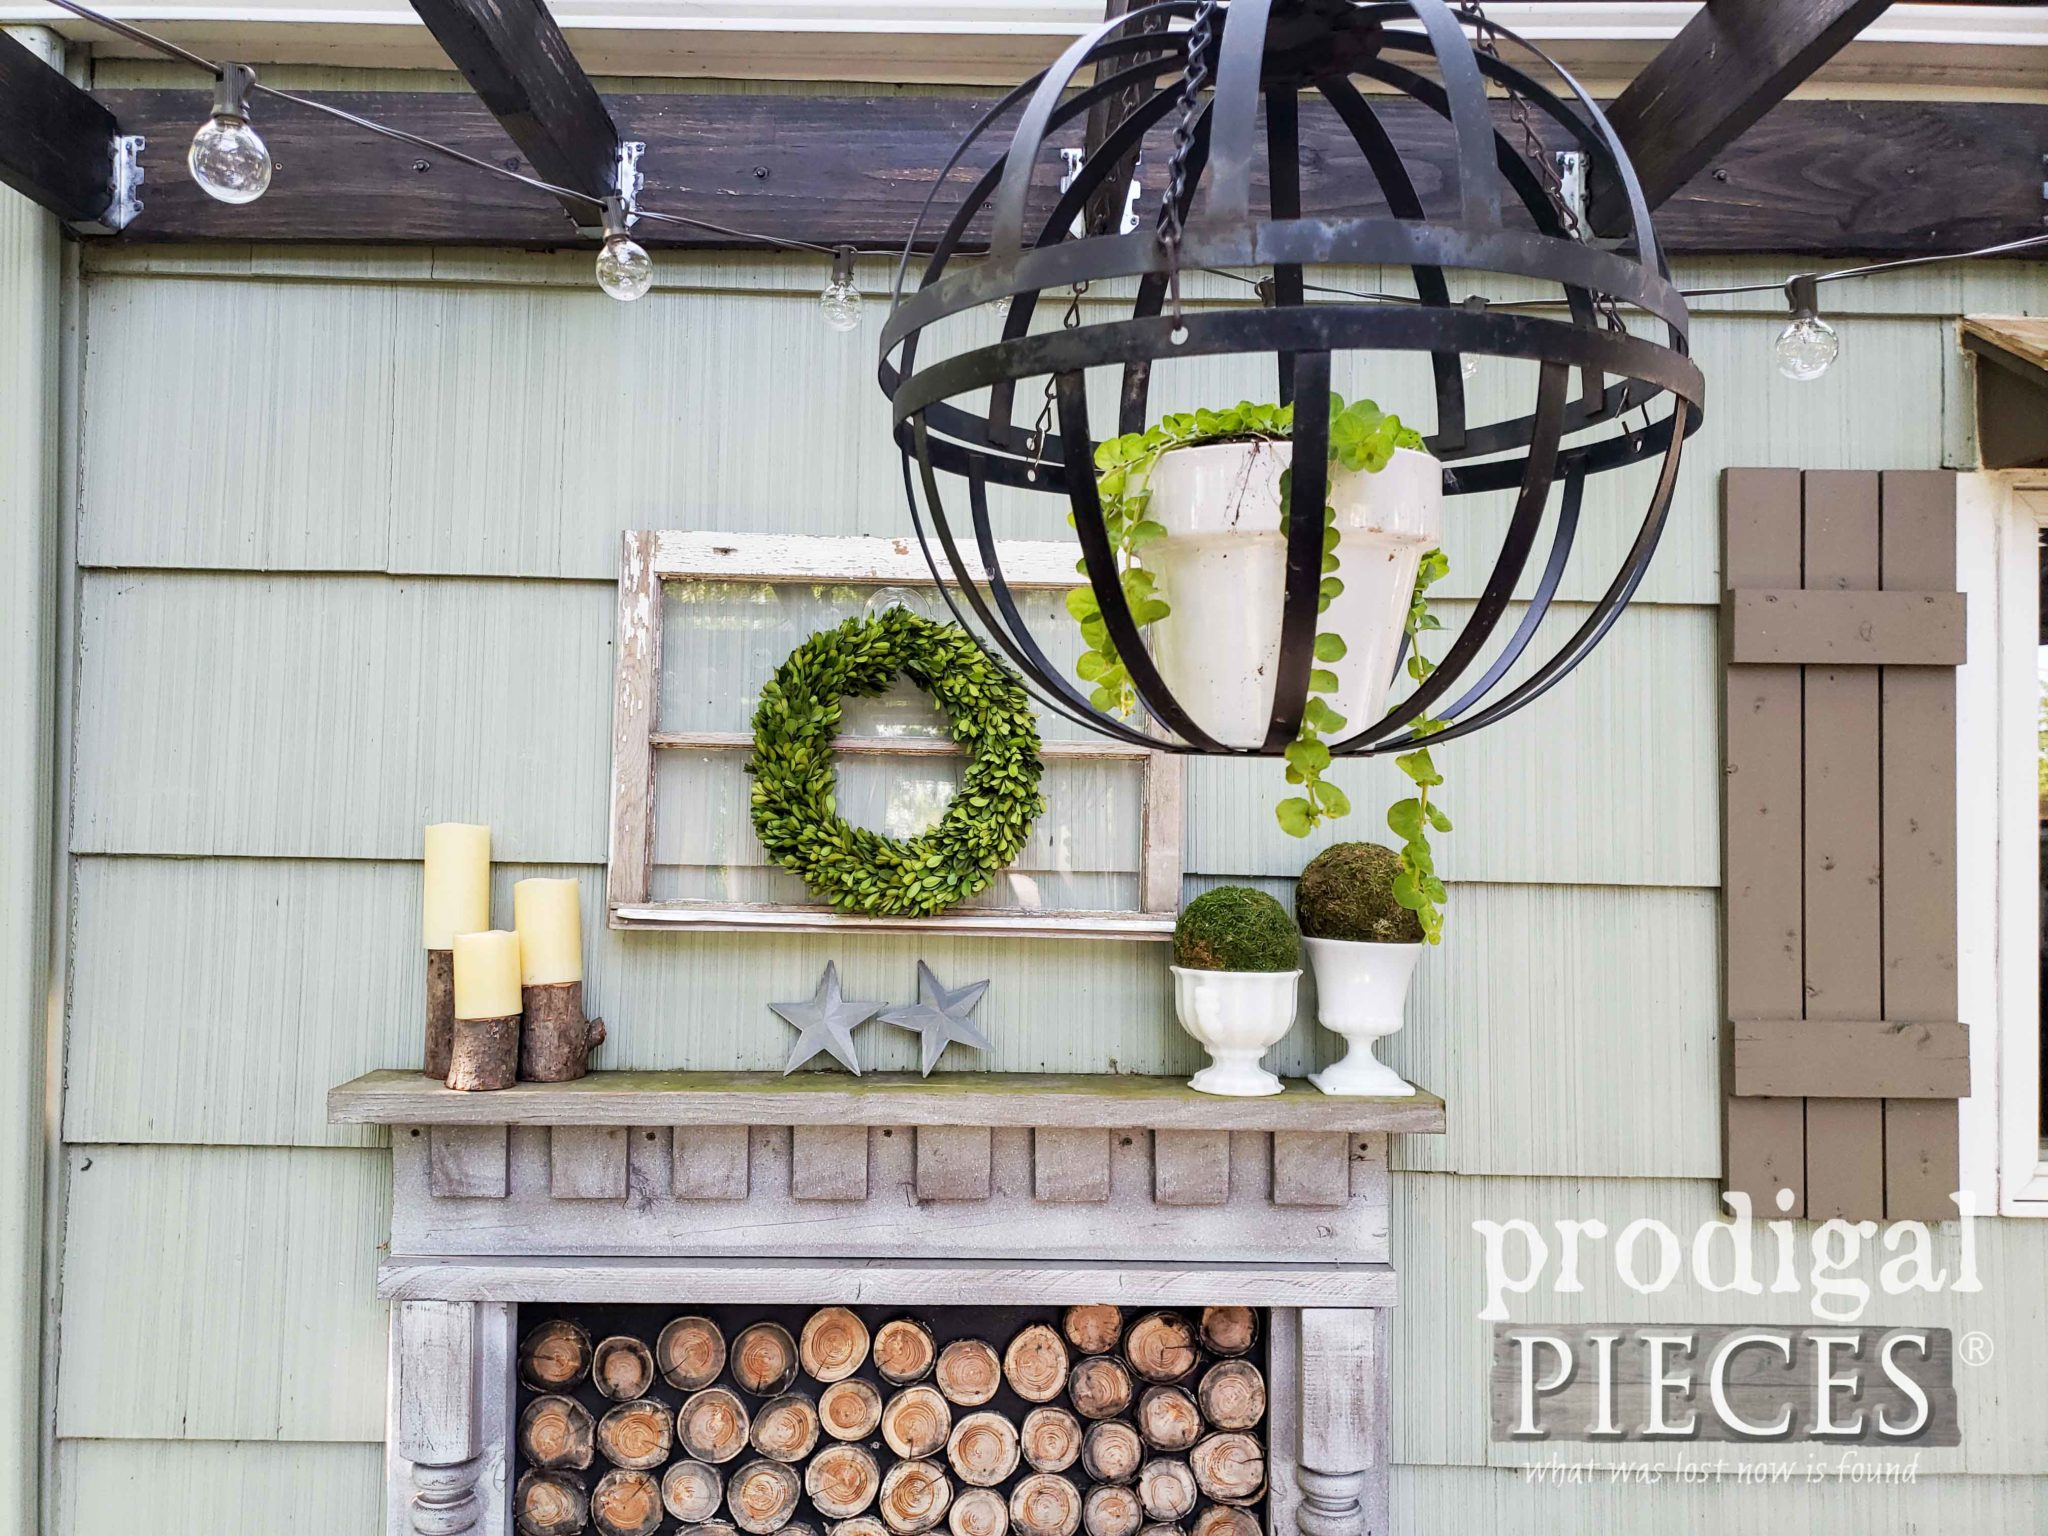 Repurposed Patio Decor by Larissa of Prodigal Pieces | Video tutorials at prodigalpieces.com #prodigalpieces #patio #home #homedecor #outdoor #entertaining